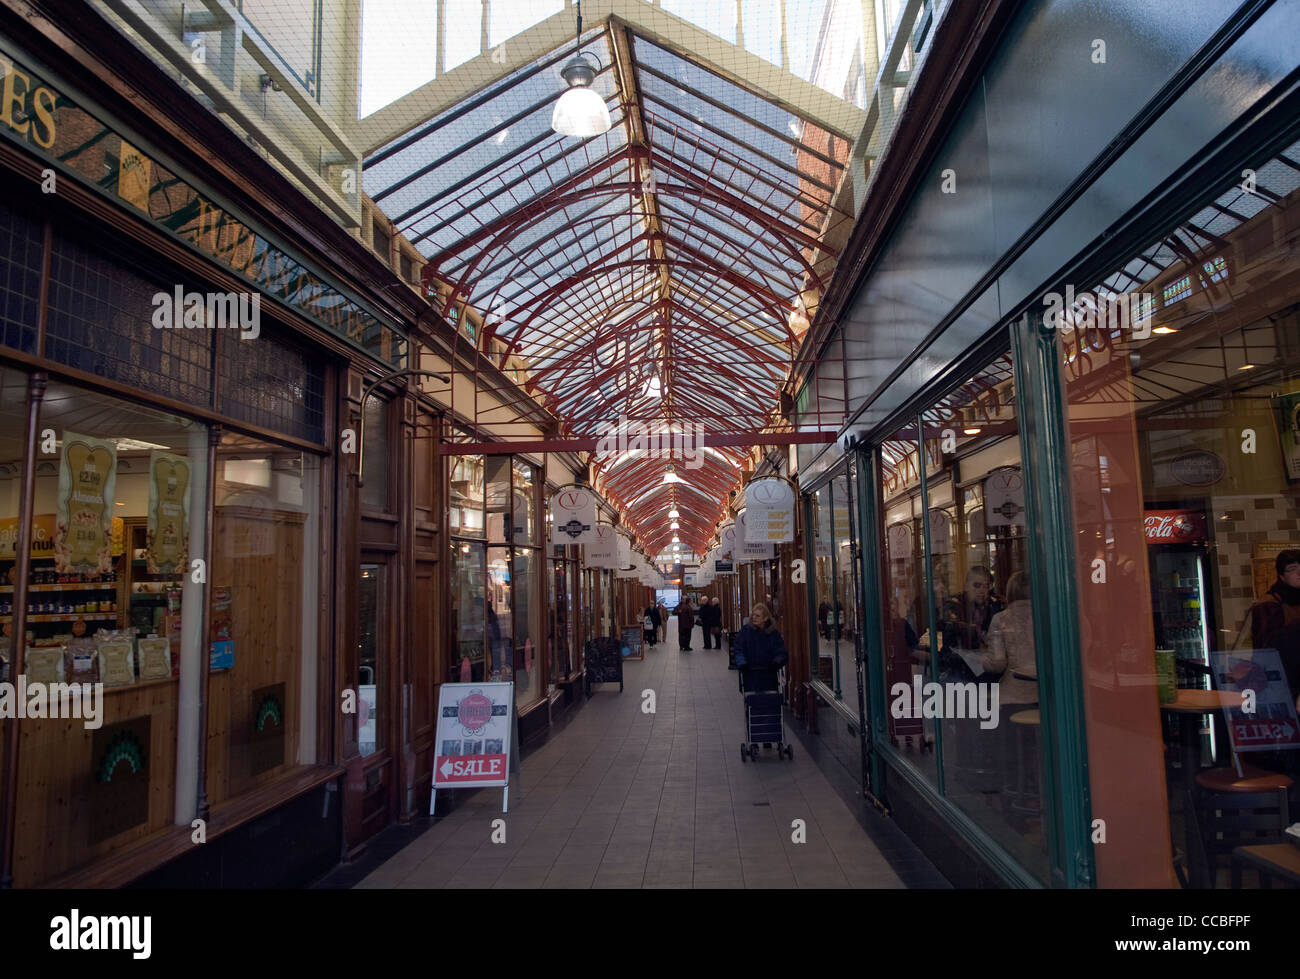 Victoria arcade shops Great Yarmouth, England - Stock Image